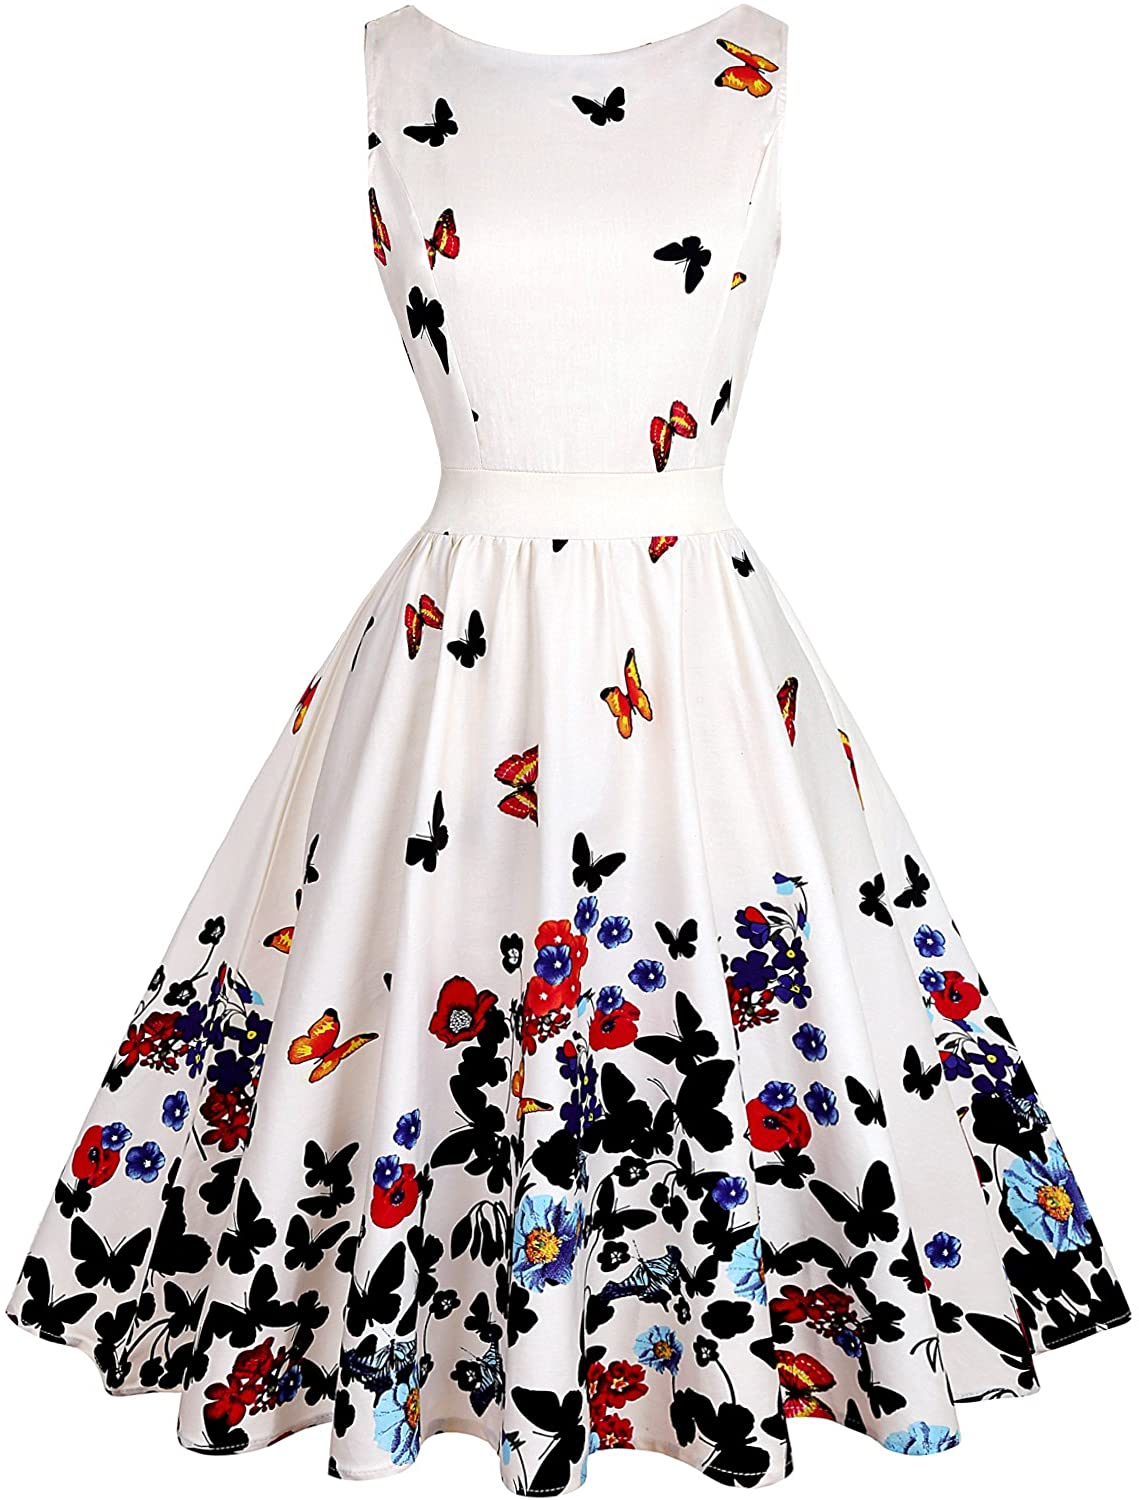 OWIN Women's 1950s Vintage Floral Swing Party Cocktail Dress with Butterfly Pattern (S, Mild White + Butterfly)